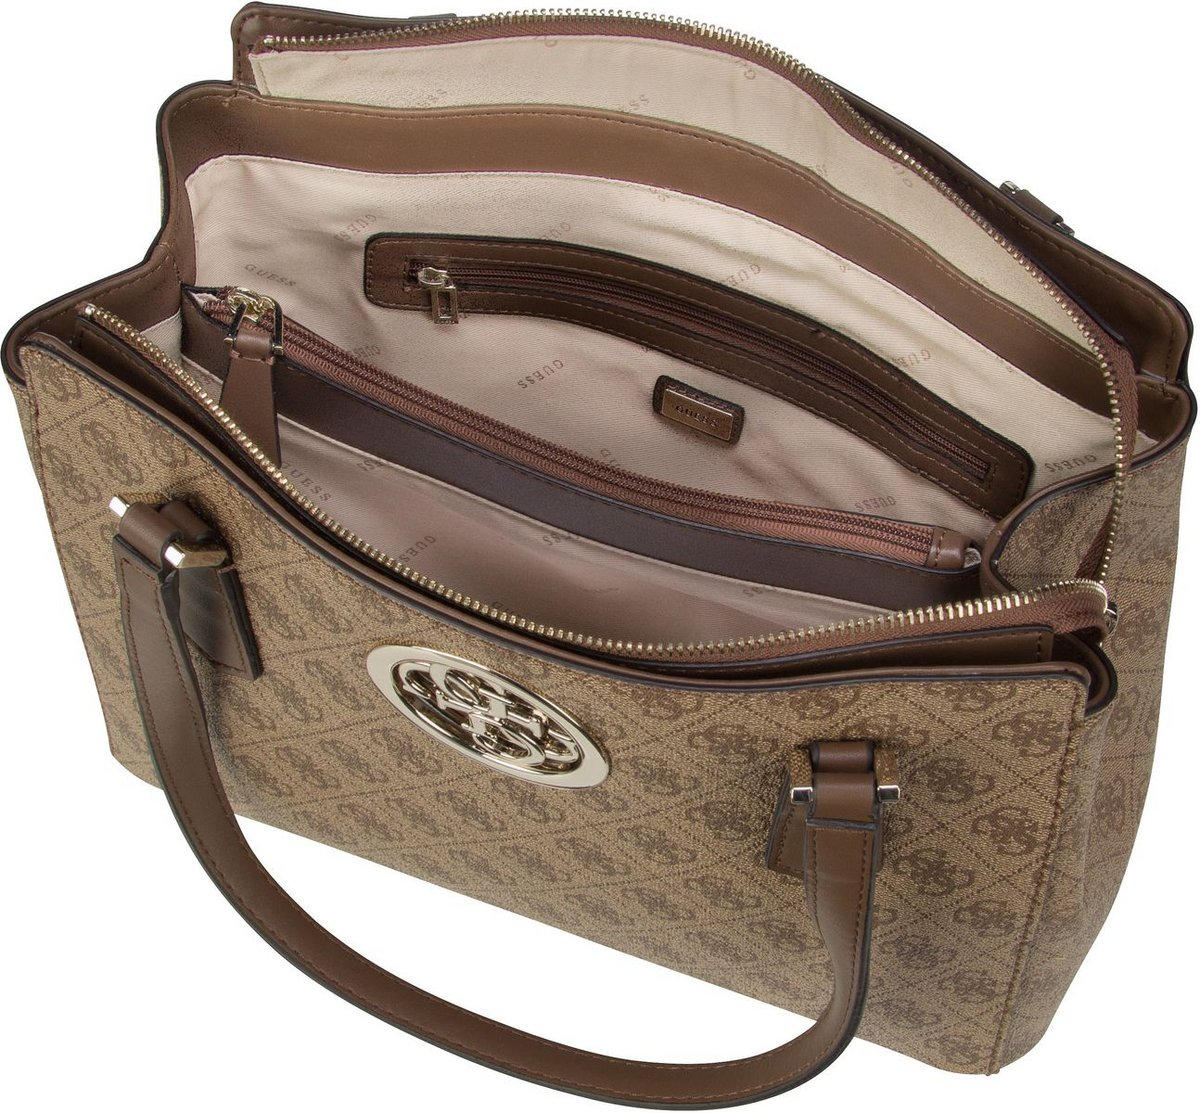 Guess Open Road Luxury Satchel Brown